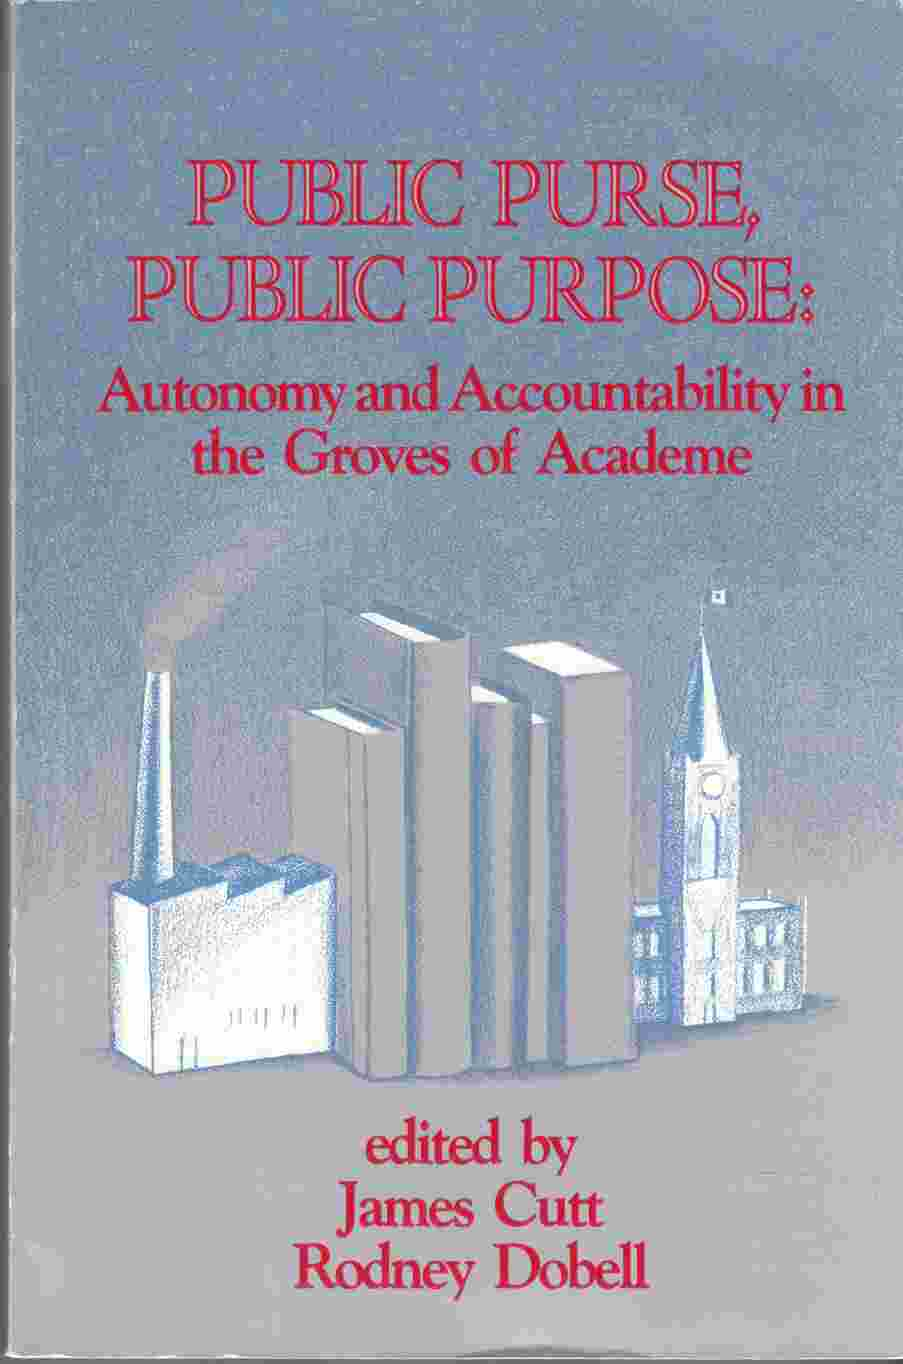 Image for Public Purse, Public Purpose: Autonomy and Accountability in the Groves of Academe